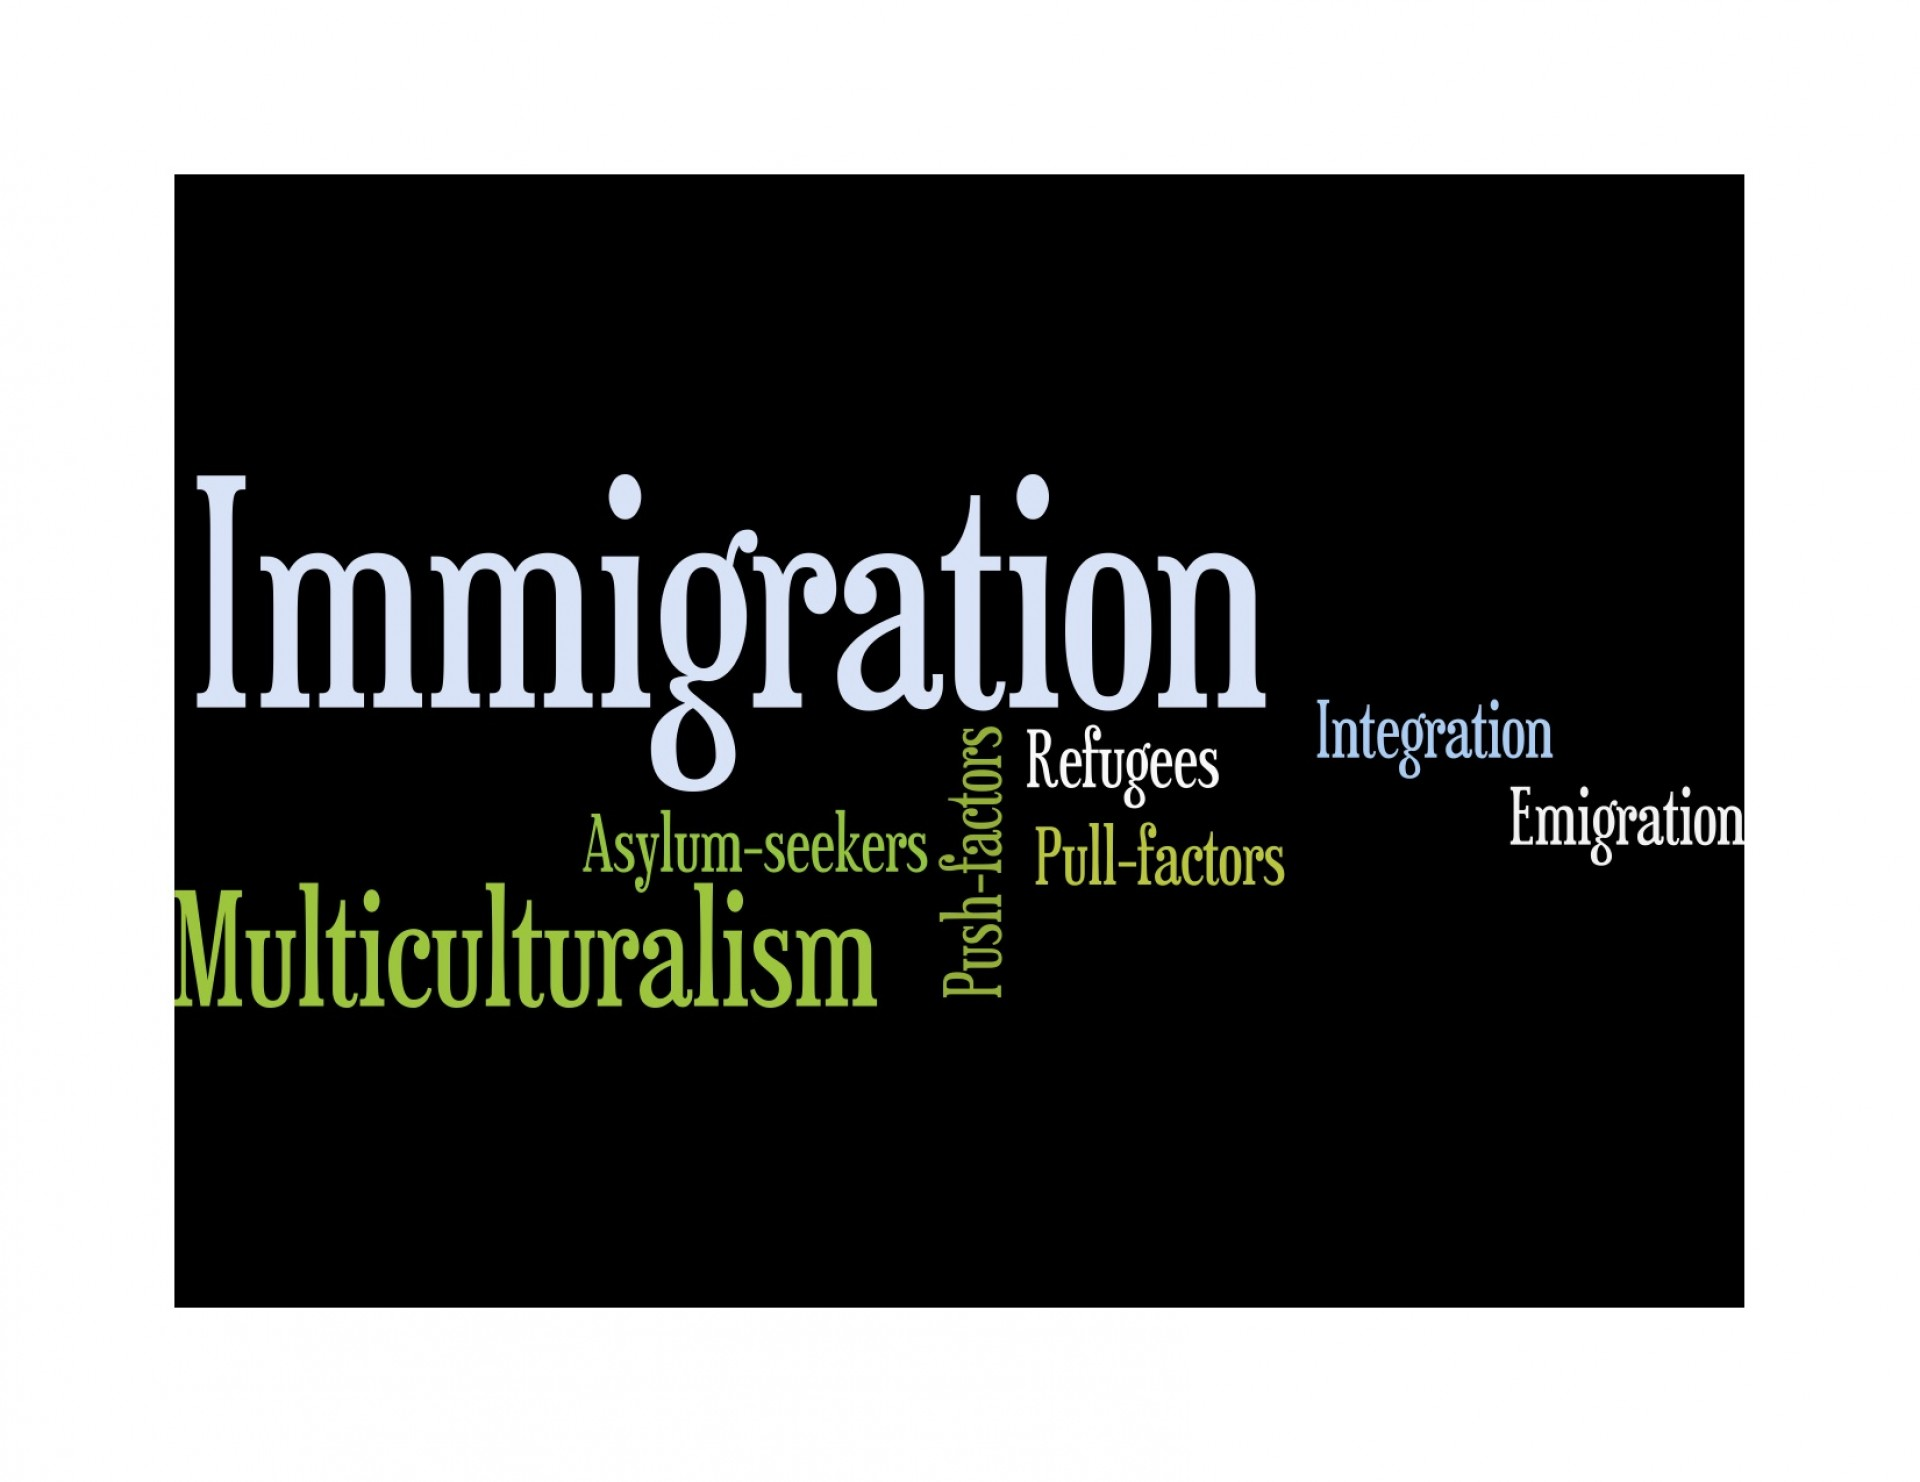 016 Immigration Essay Example Exceptional Conclusion Topics 1920